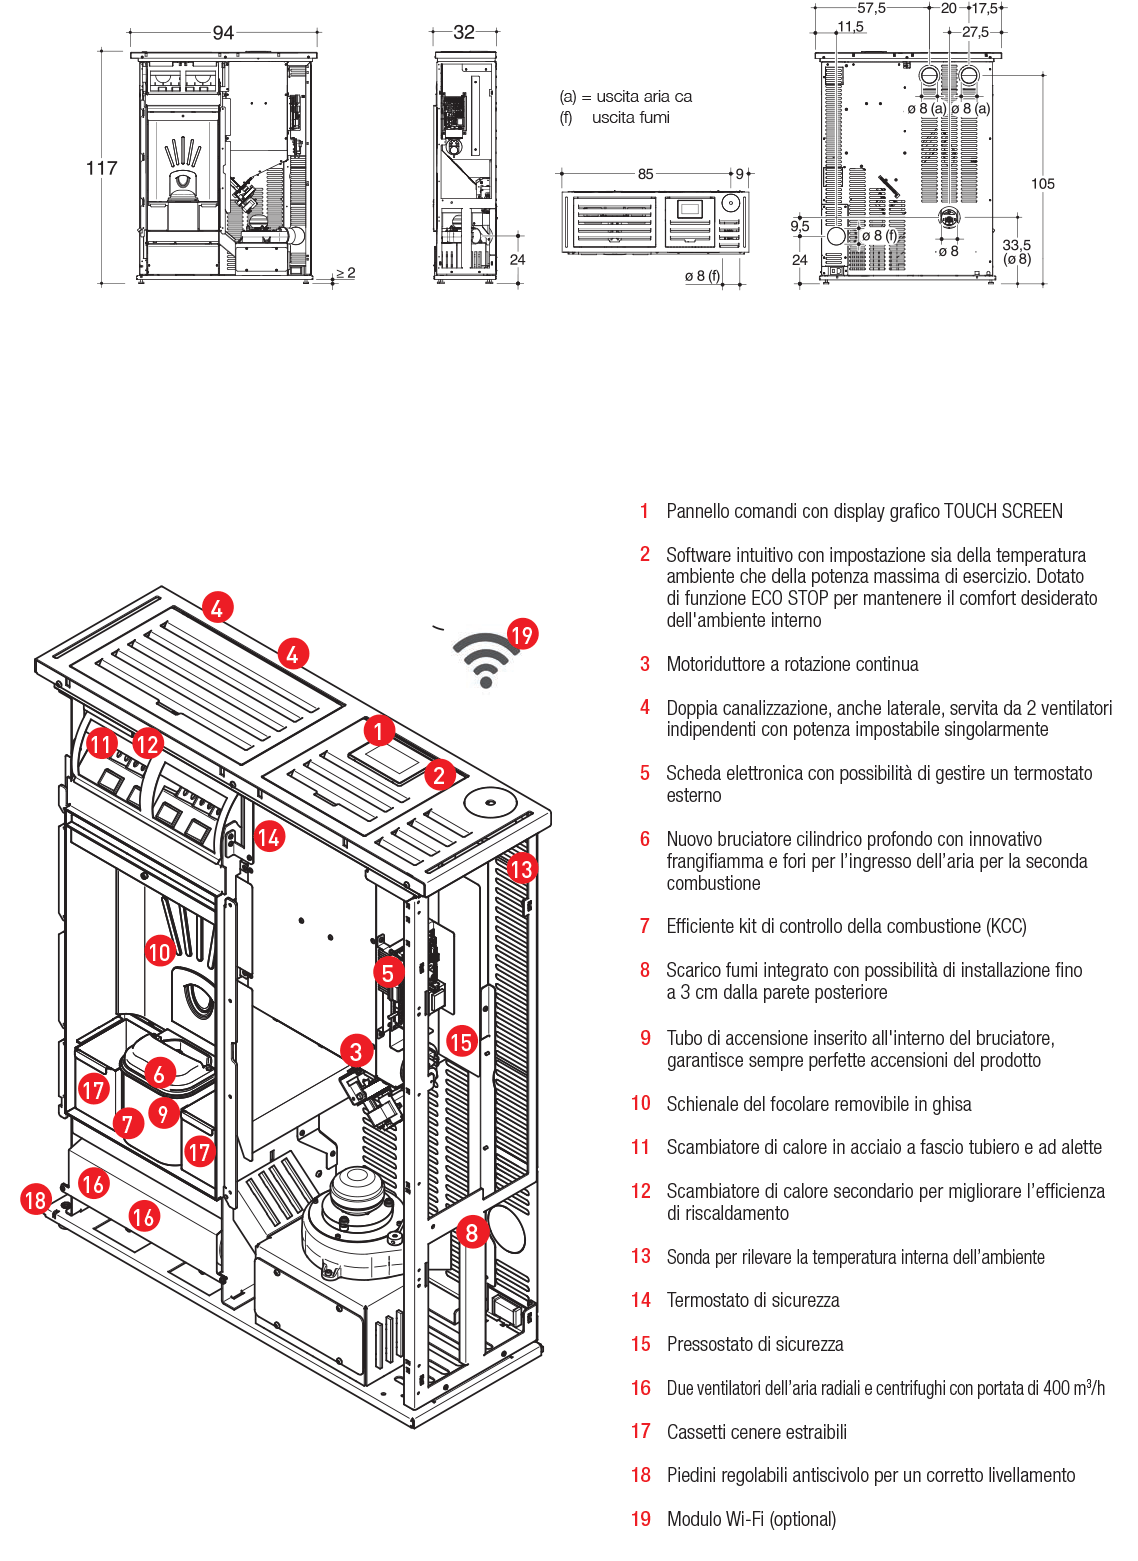 slim stove, pellet with a system of forced convection, ducted